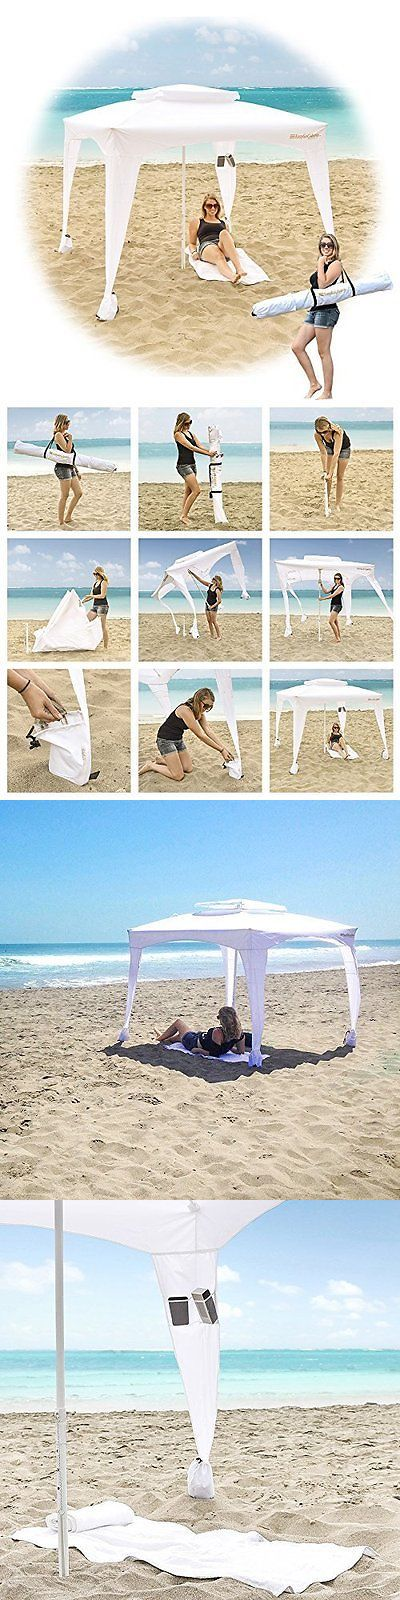 Canopies and Shelters 179011: White Large Cabana Beach Tent Canopy Umbrella Outdoor Sun Uv Shelter Camping New -> BUY IT NOW ONLY: $109.61 on eBay!